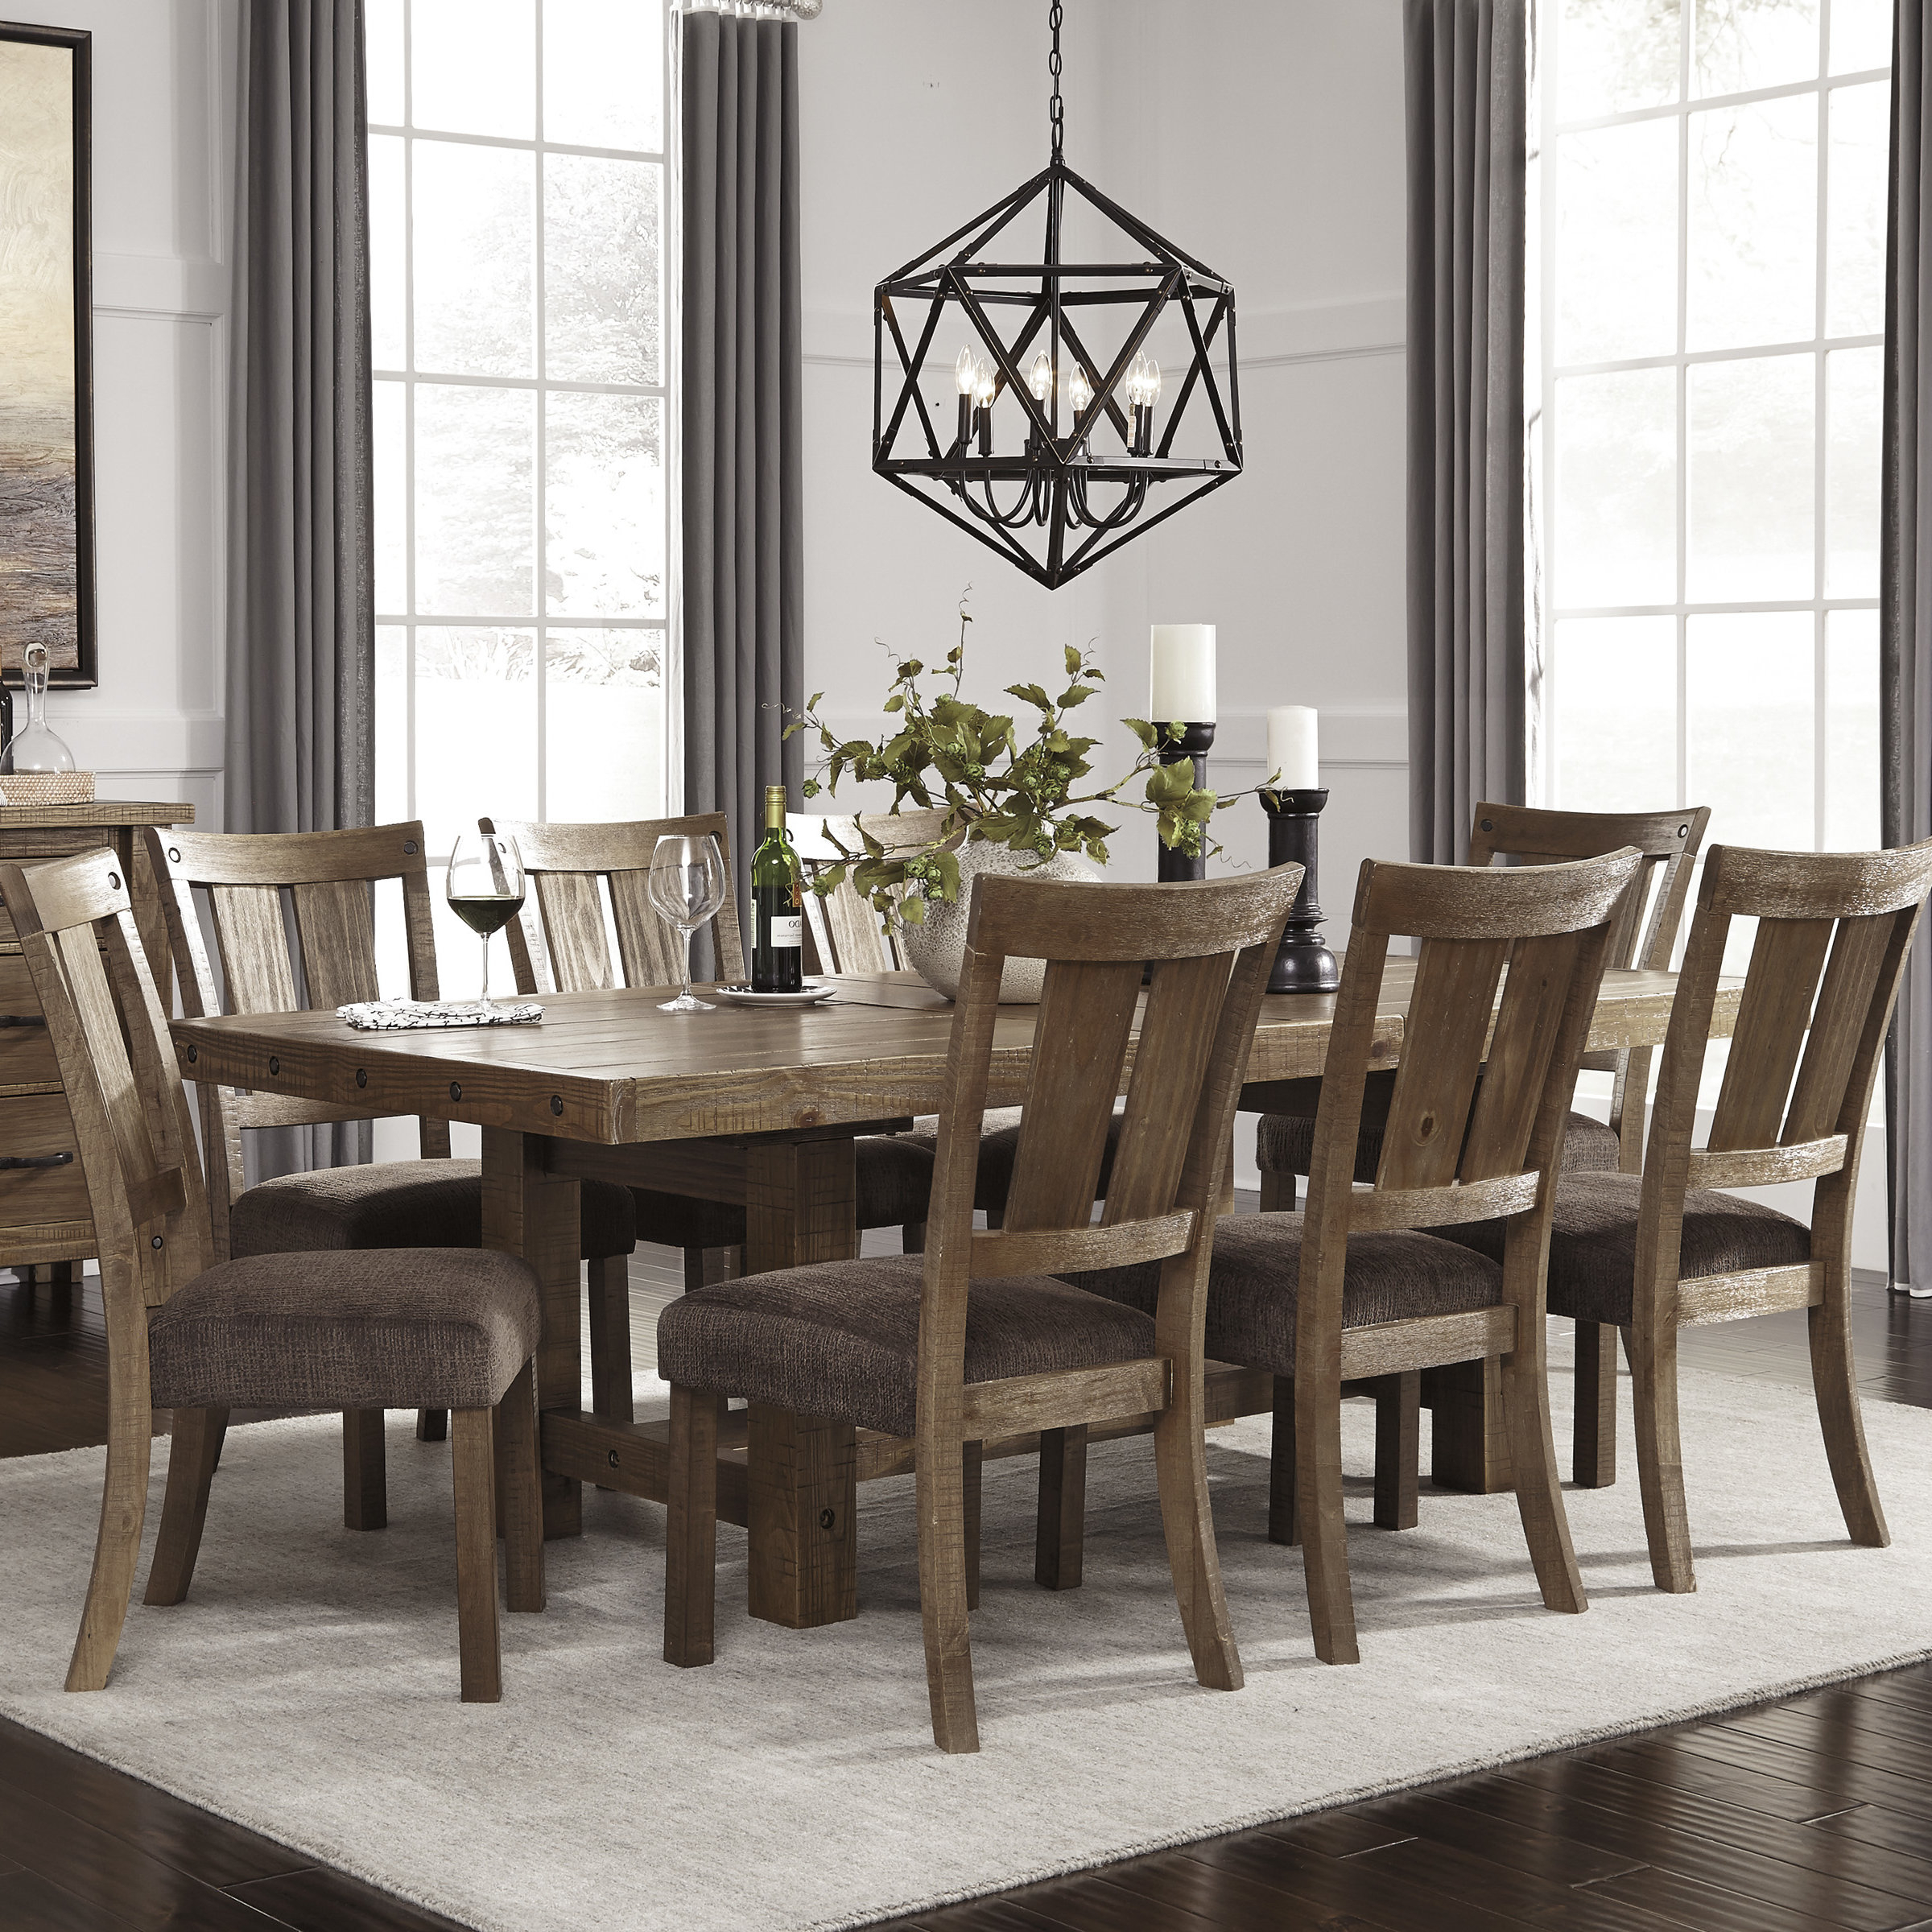 Sheetz 3 Piece Counter Height Dining Sets Within Most Recently Released Kitchen & Dining Room Sets You'll Love (View 14 of 25)